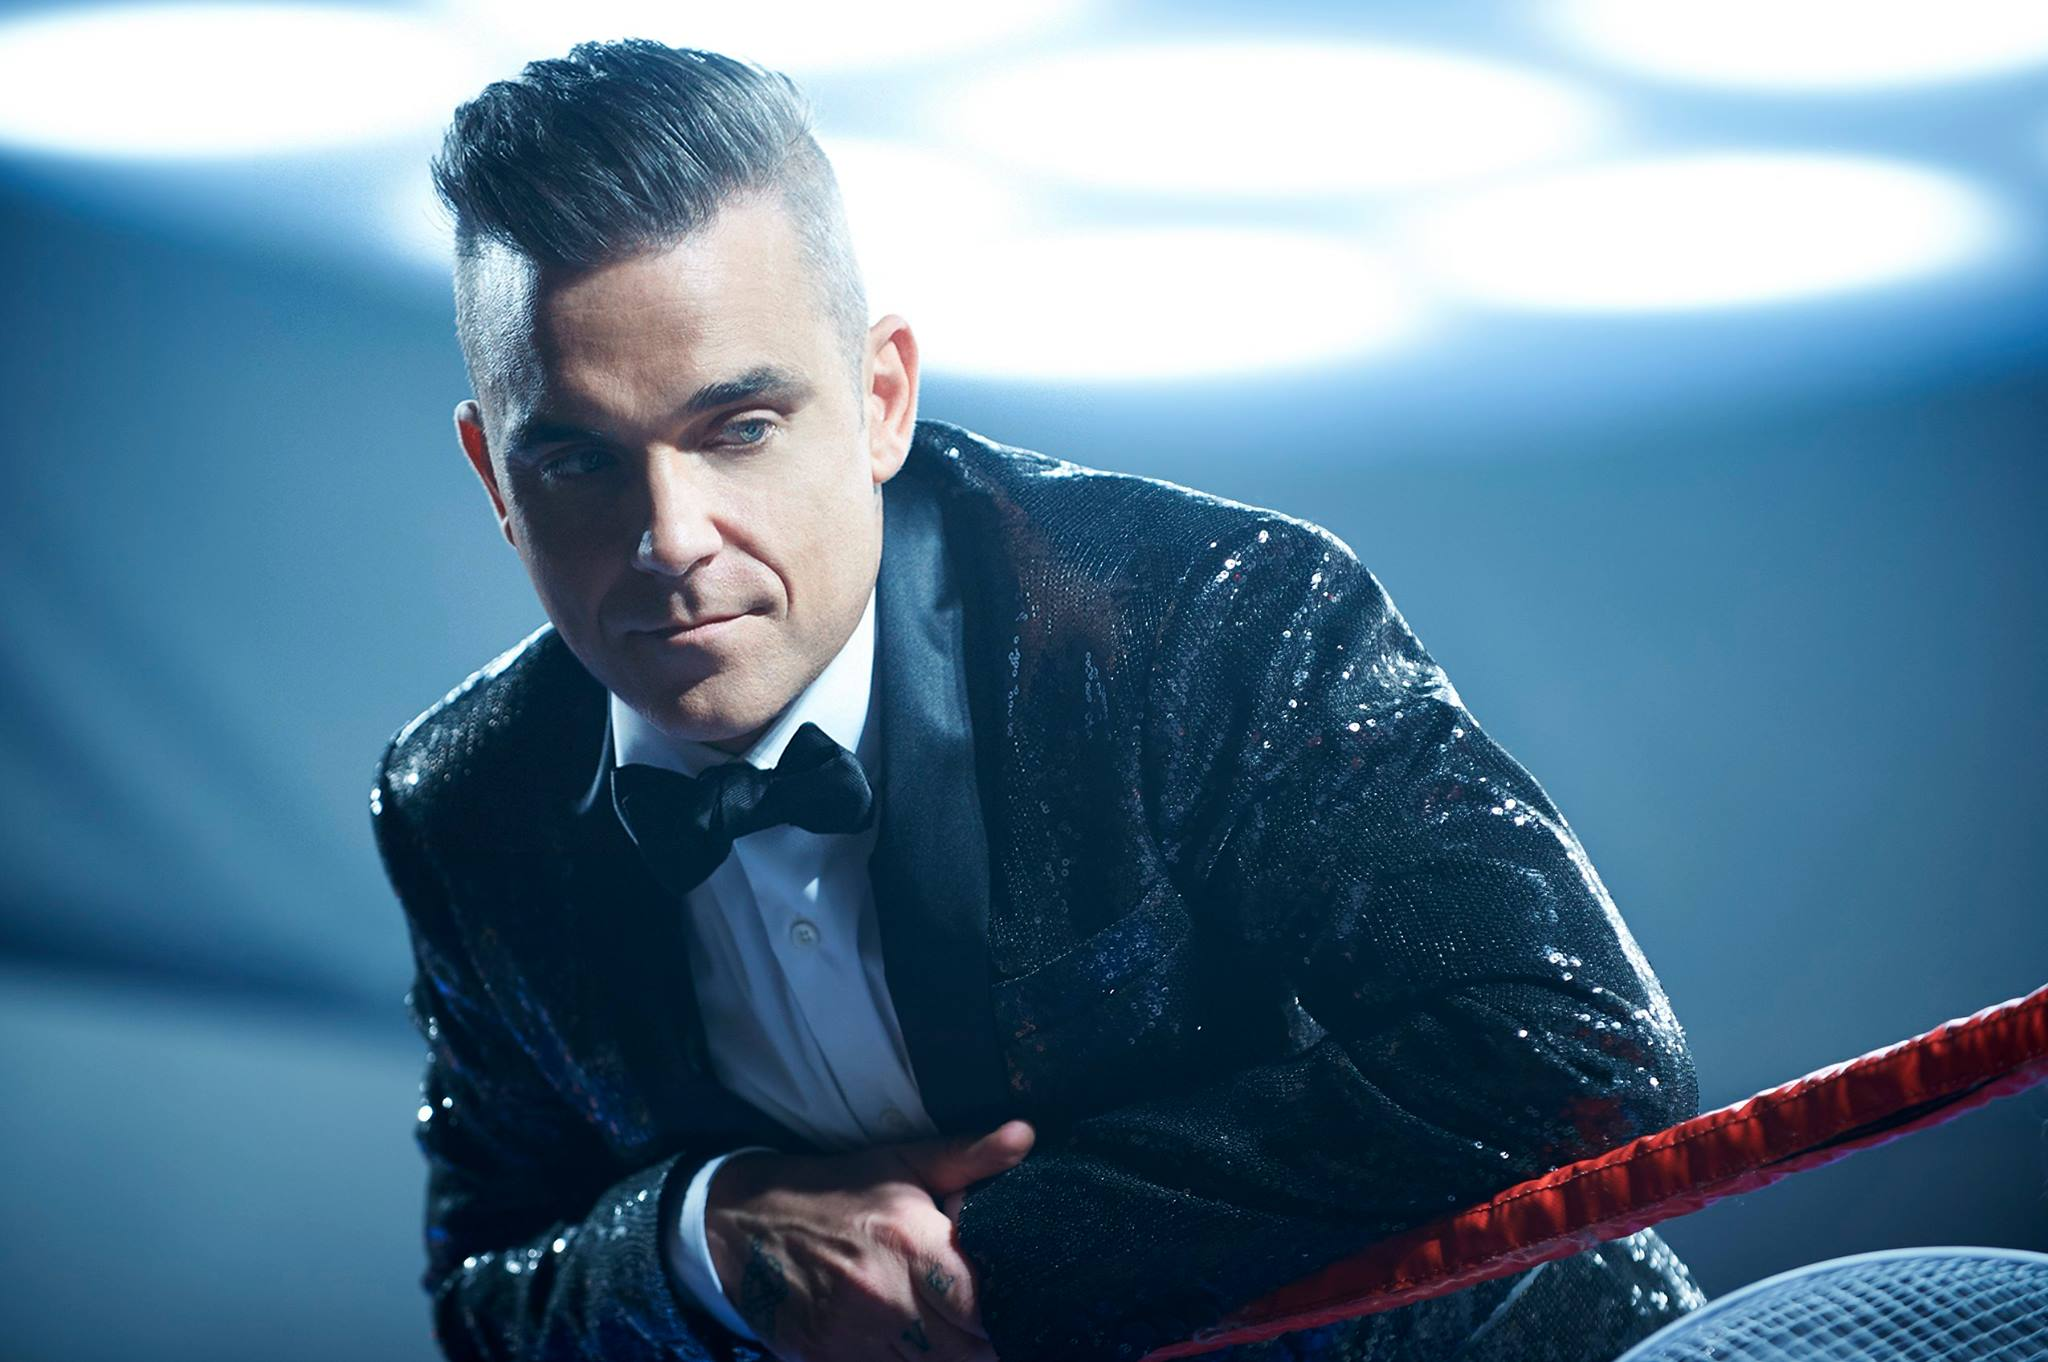 https://www.auspop.com.au/wp-content/uploads/2017/03/Robbie-Williams-Feb-2017.jpg